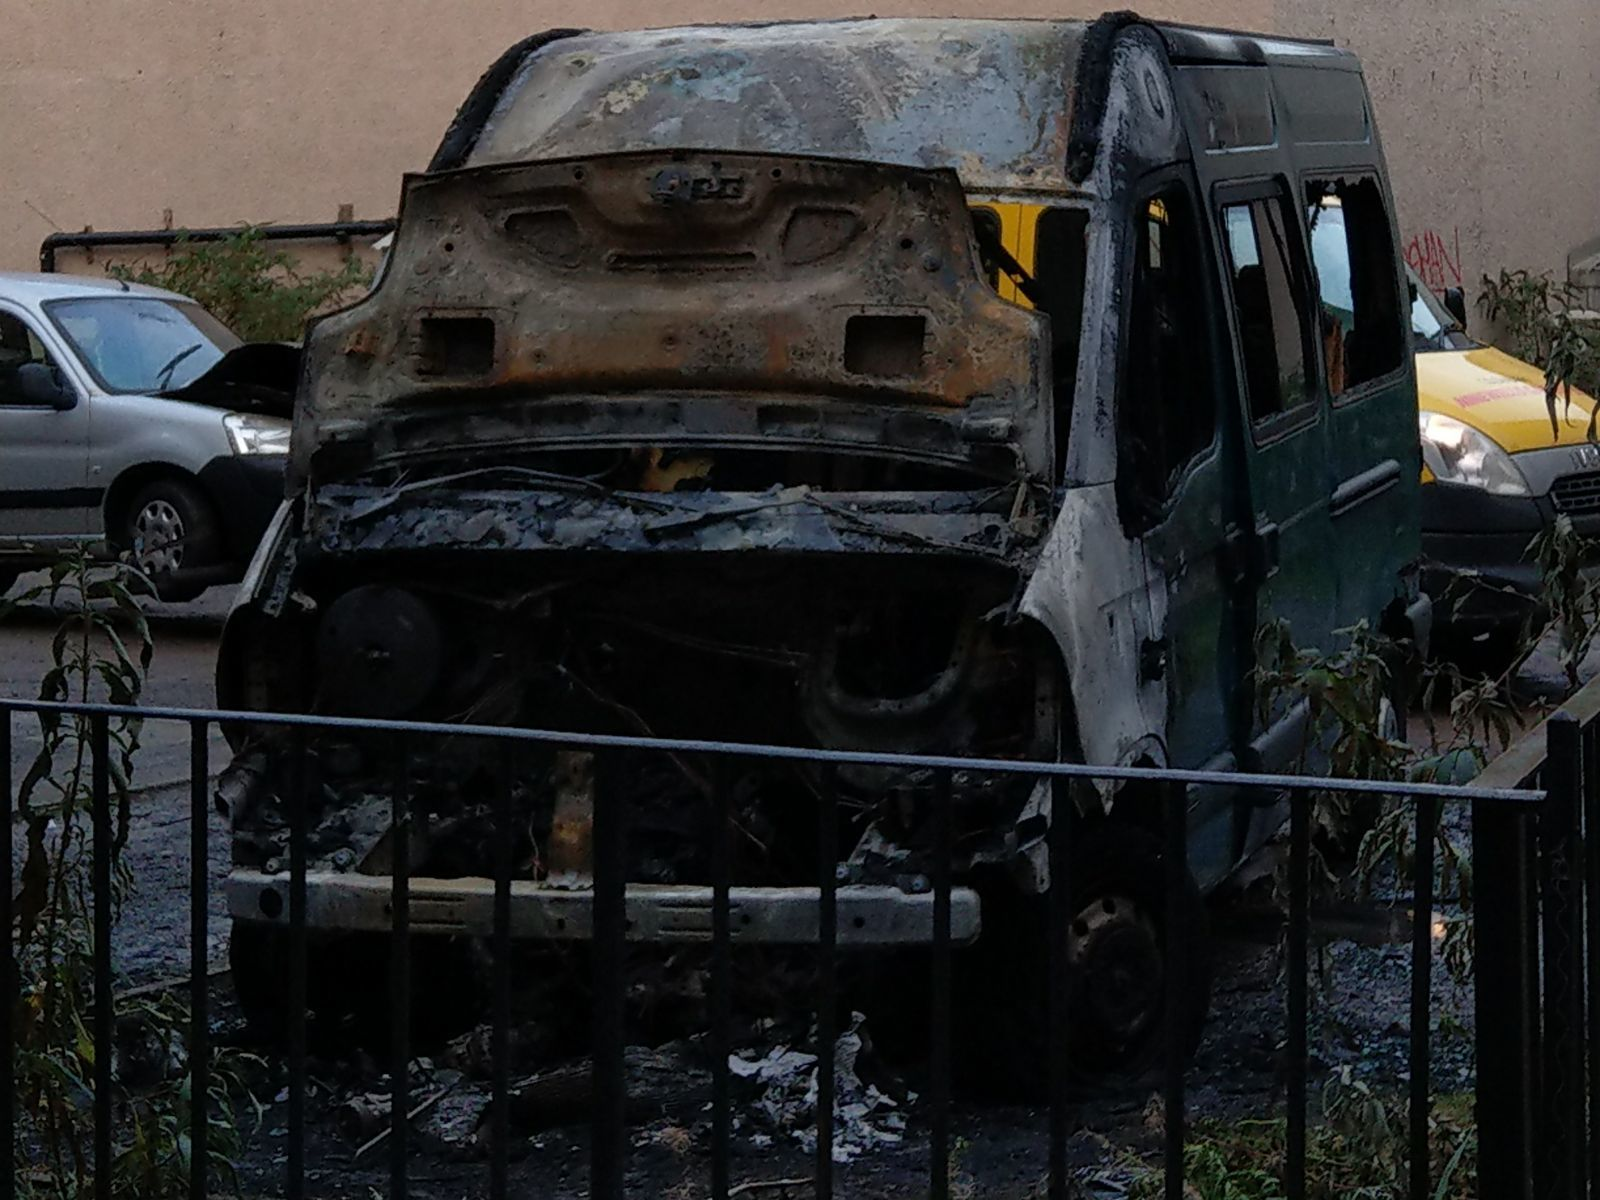 The van was completely destroyed in the fire.